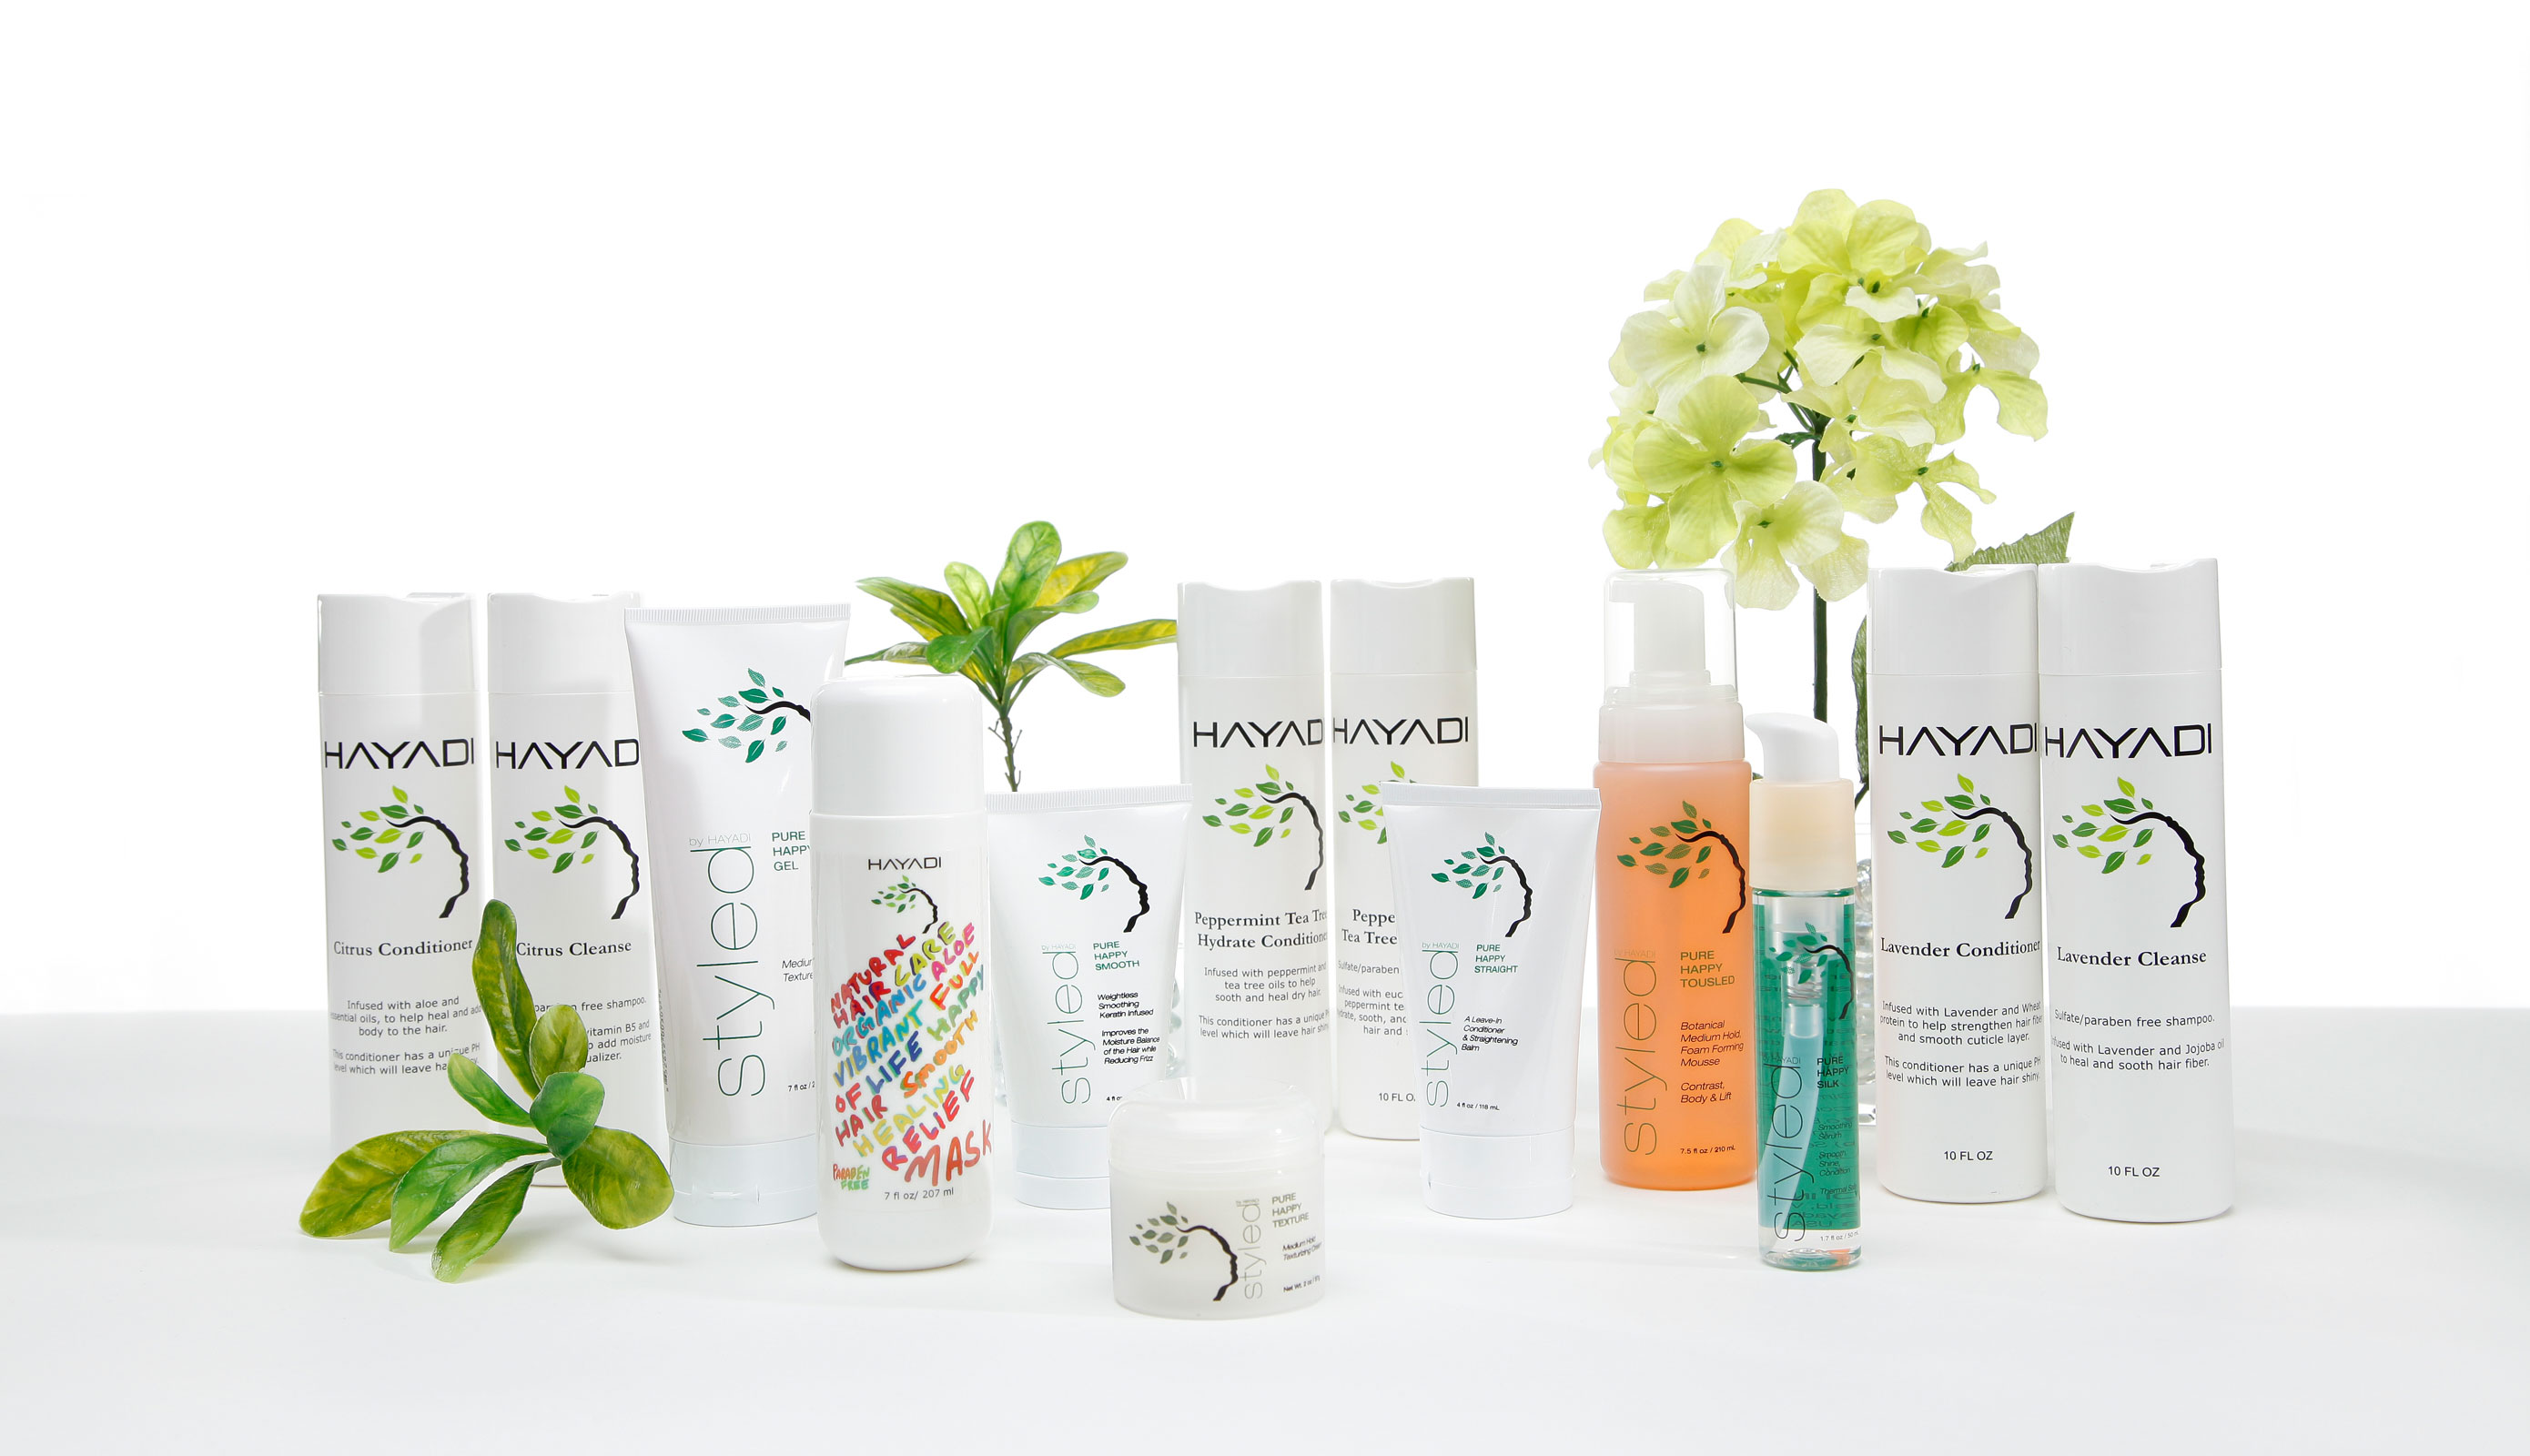 HAYADI Styling Products